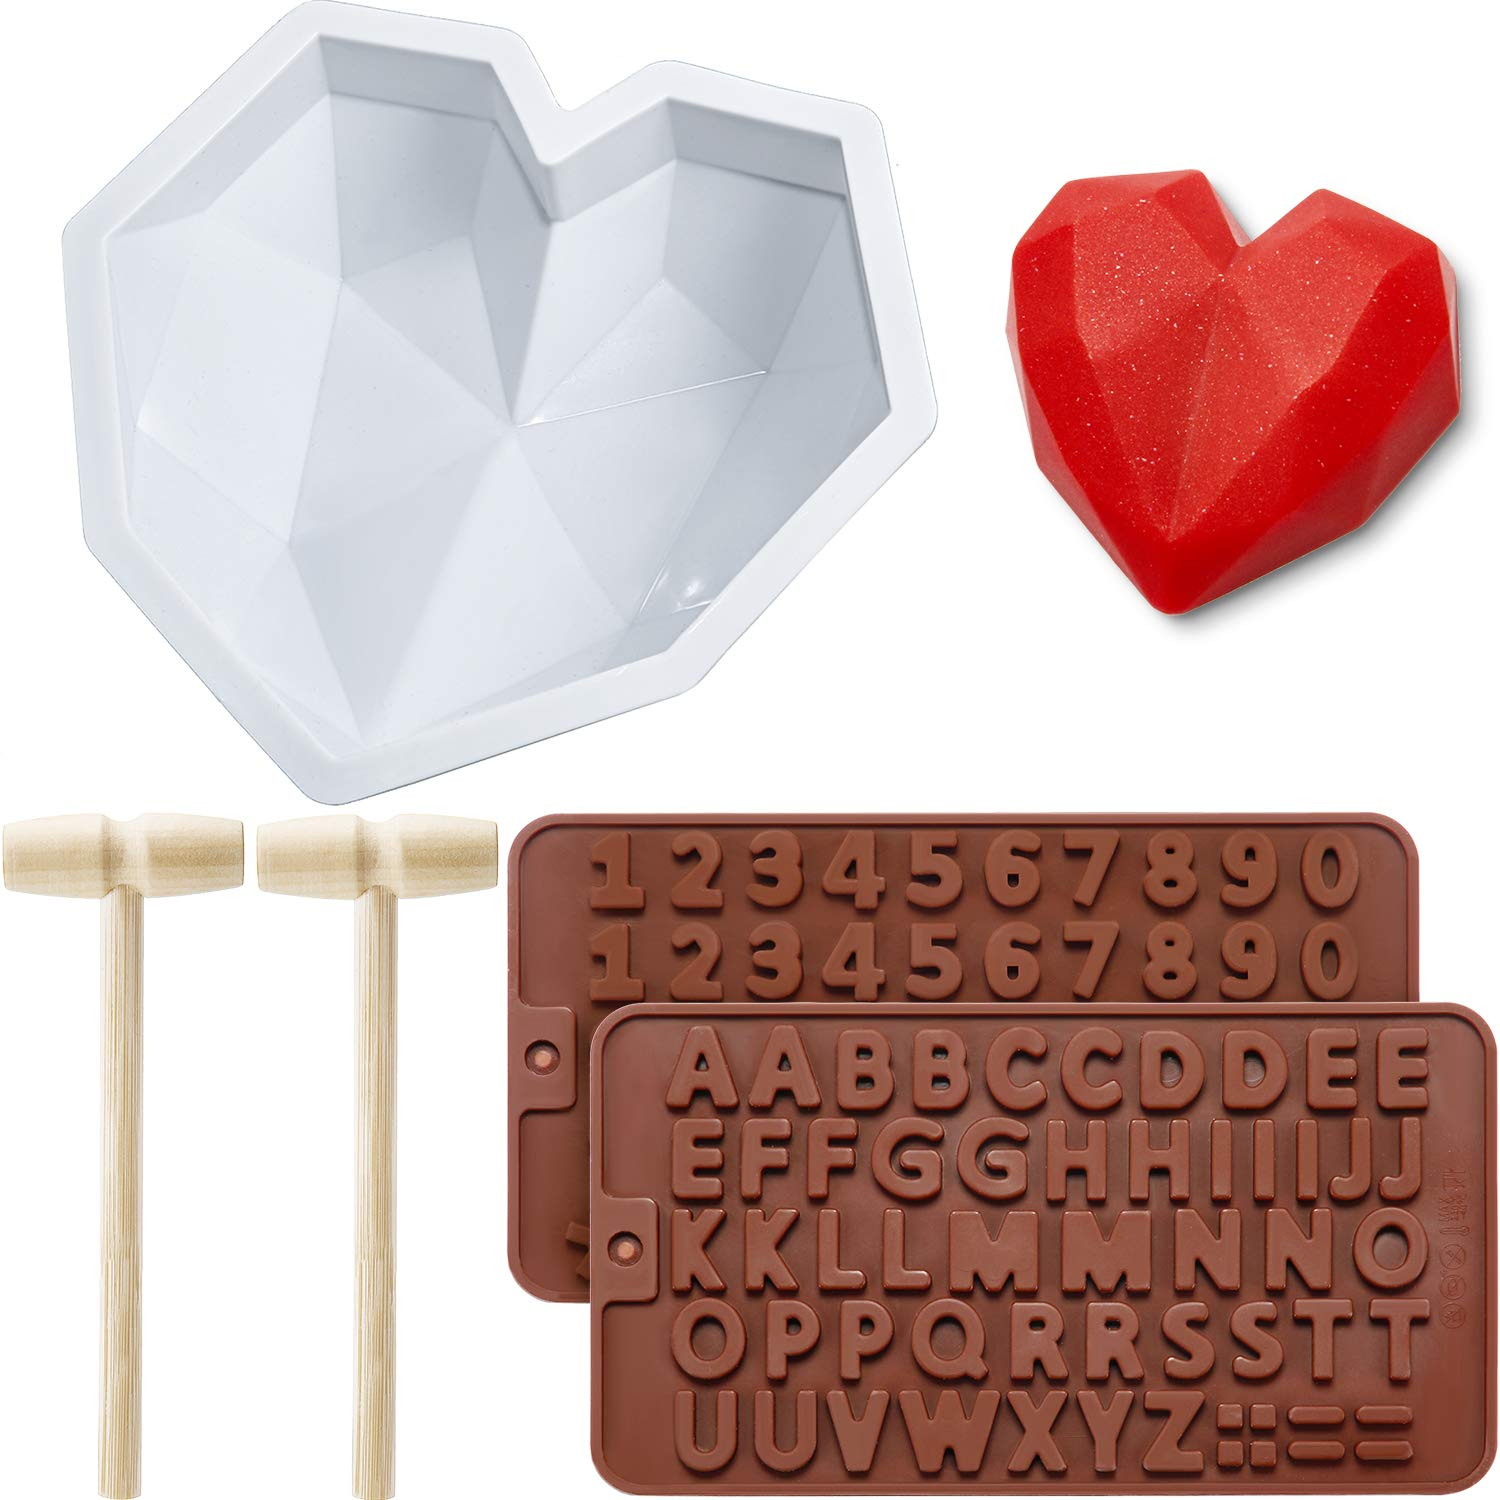 Diamond Heart Mousse Cake Mold Trays 8.7 Inch Silicone Baking Pan Oven Safe Not Sticky Mould, Wooden Hammers Mallet Pounding Toy and Chocolate Molds for Valentine Candy Chocolate Making (Brown)